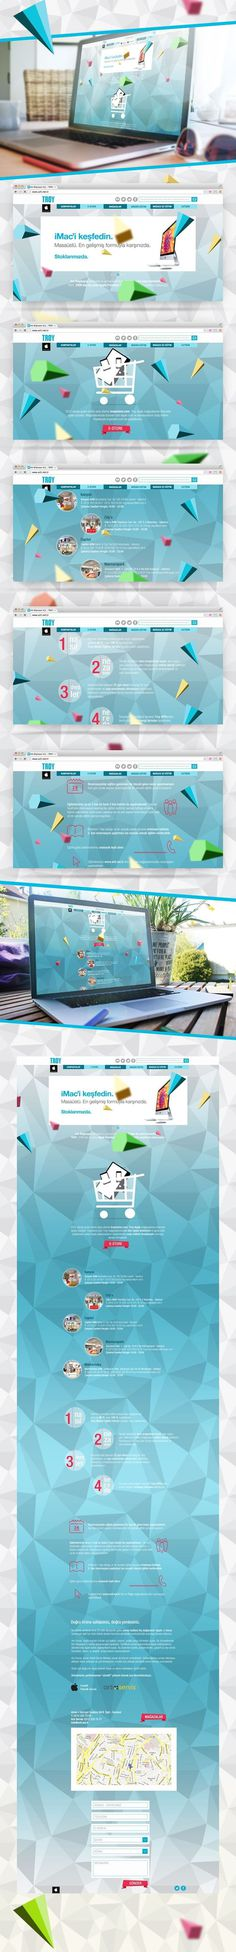 Fresh parallax design #website #parallax #web design #microsite